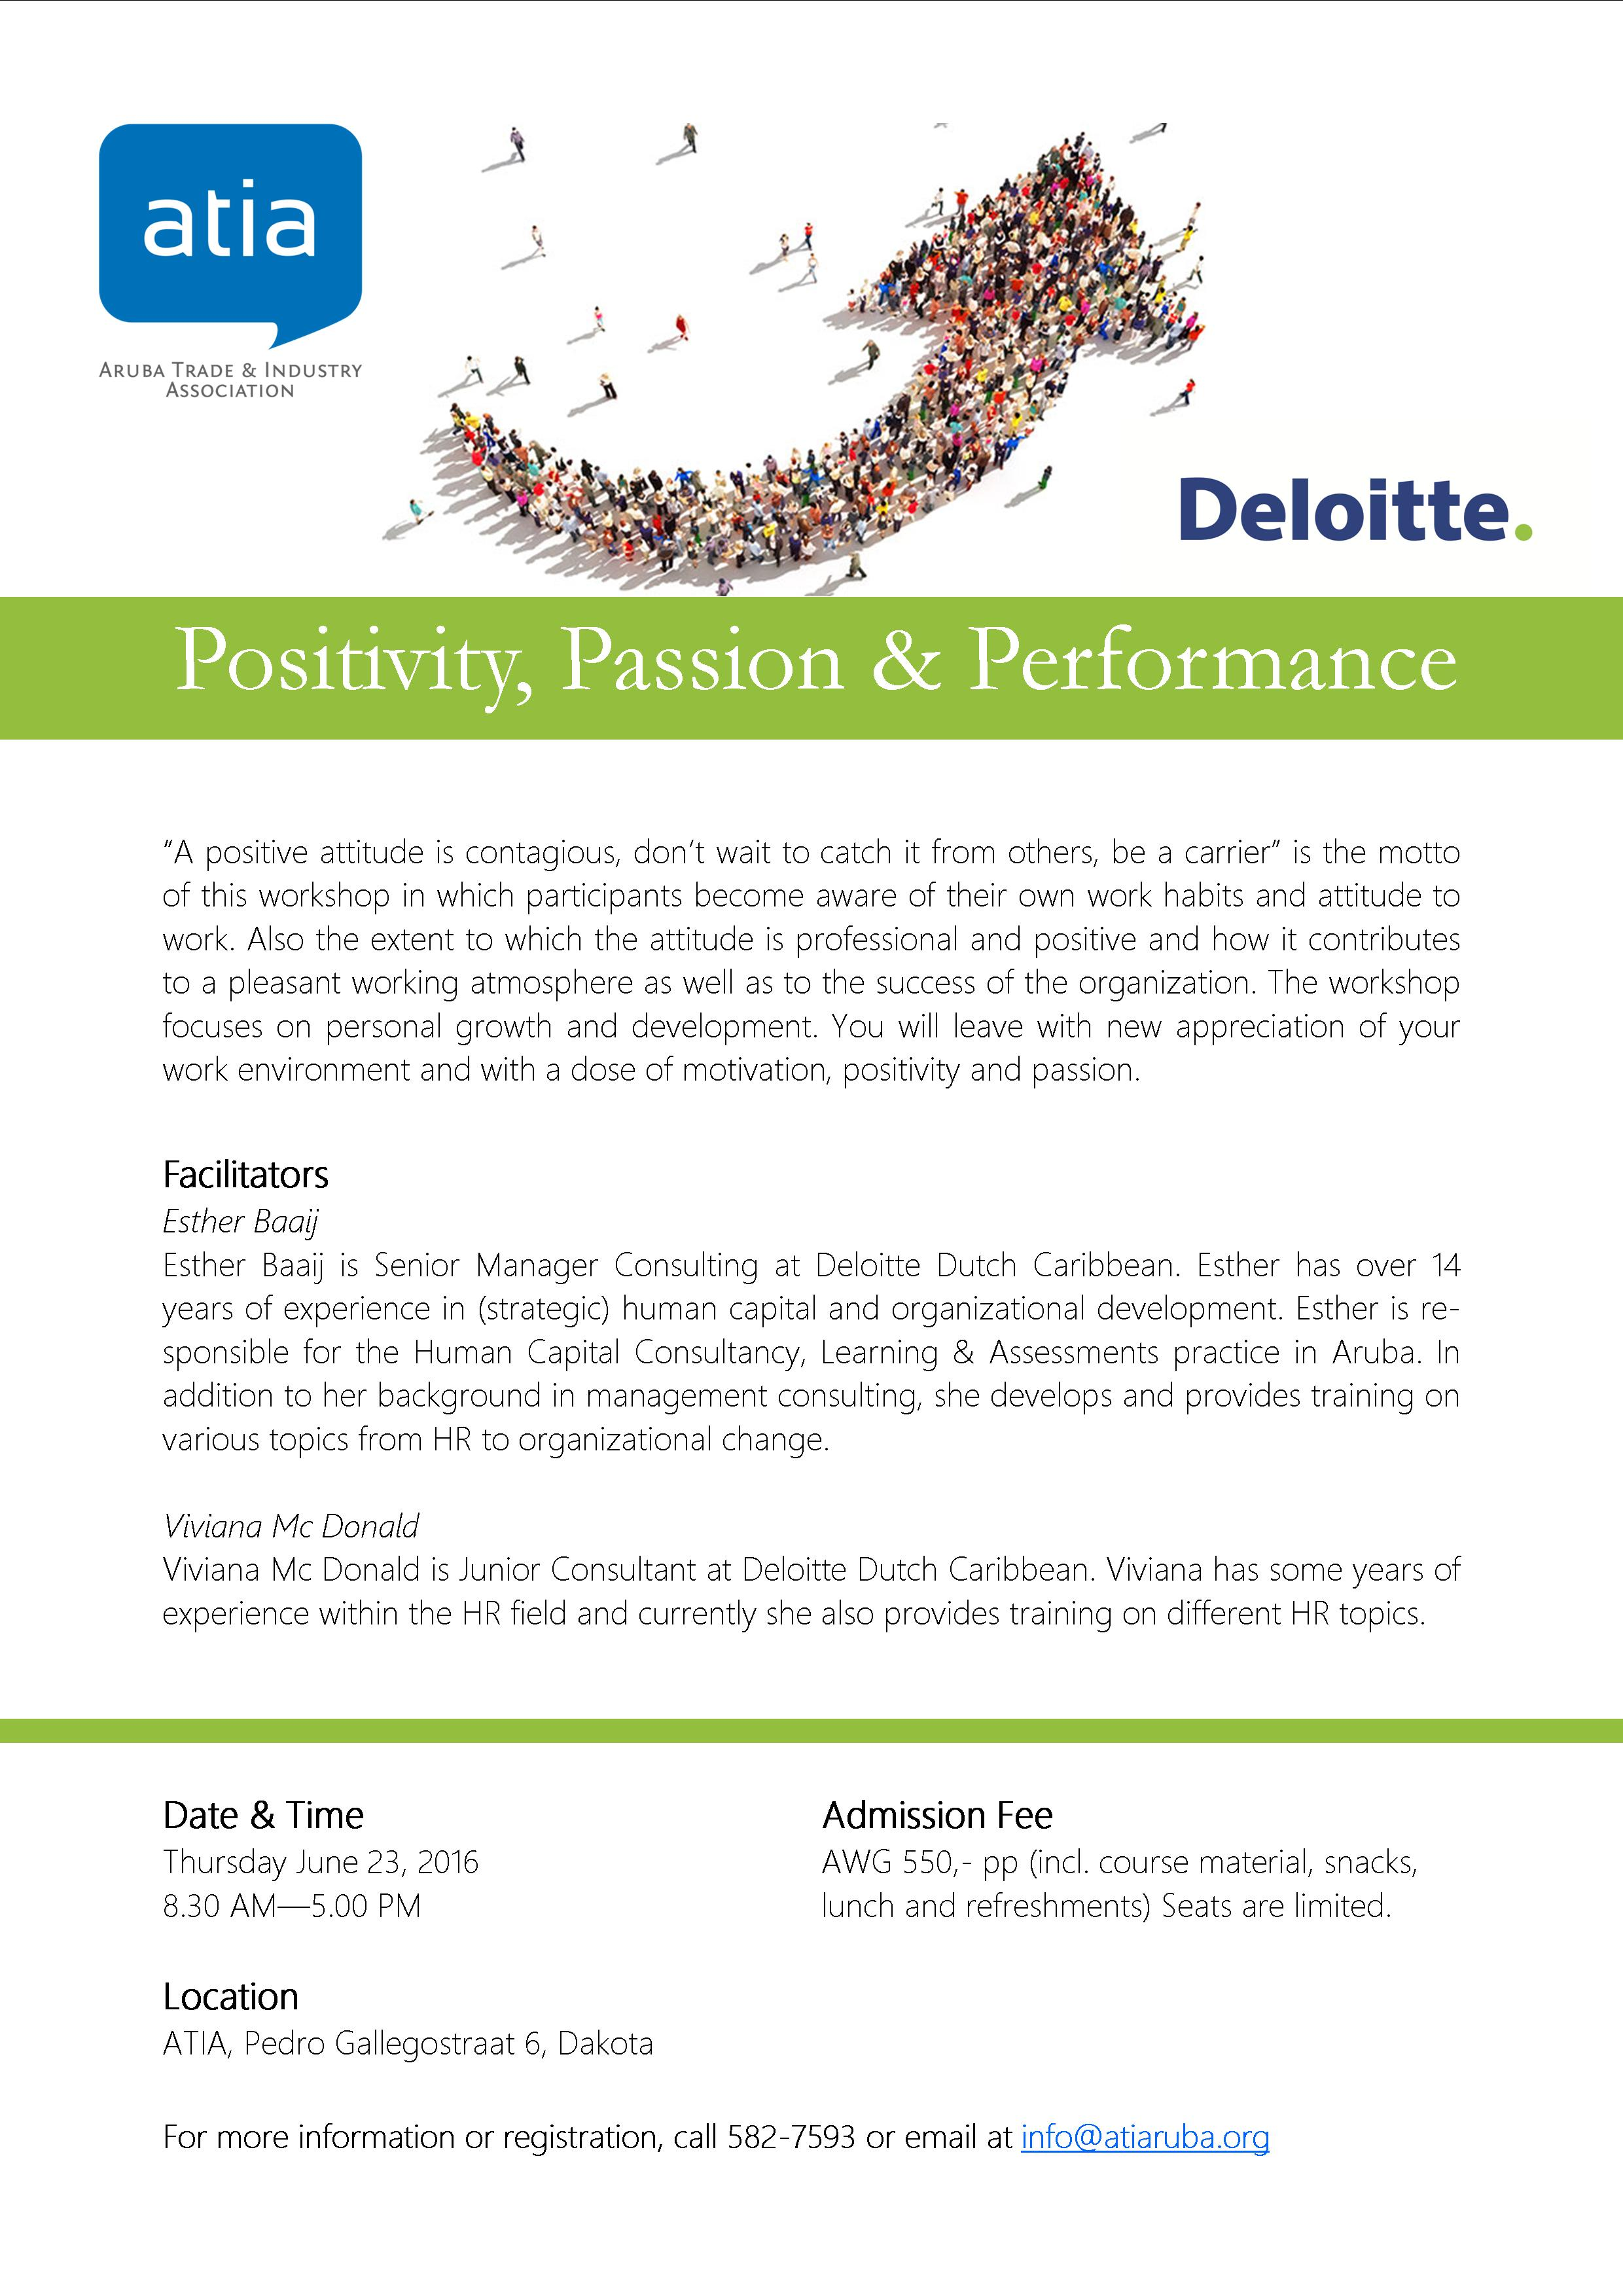 Flyer Positivity Passion & Performance